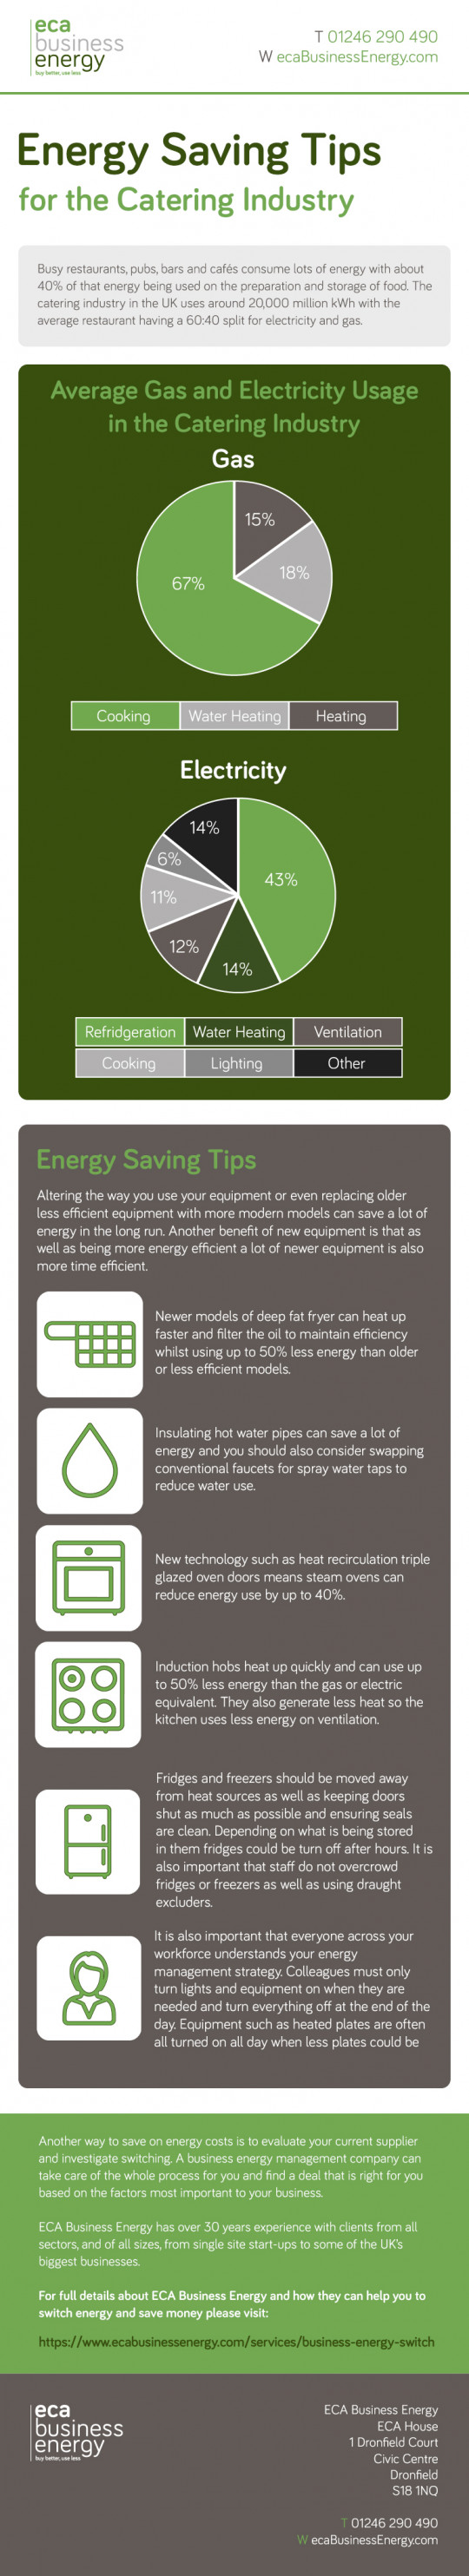 Energy Saving Tips for the Catering Industry